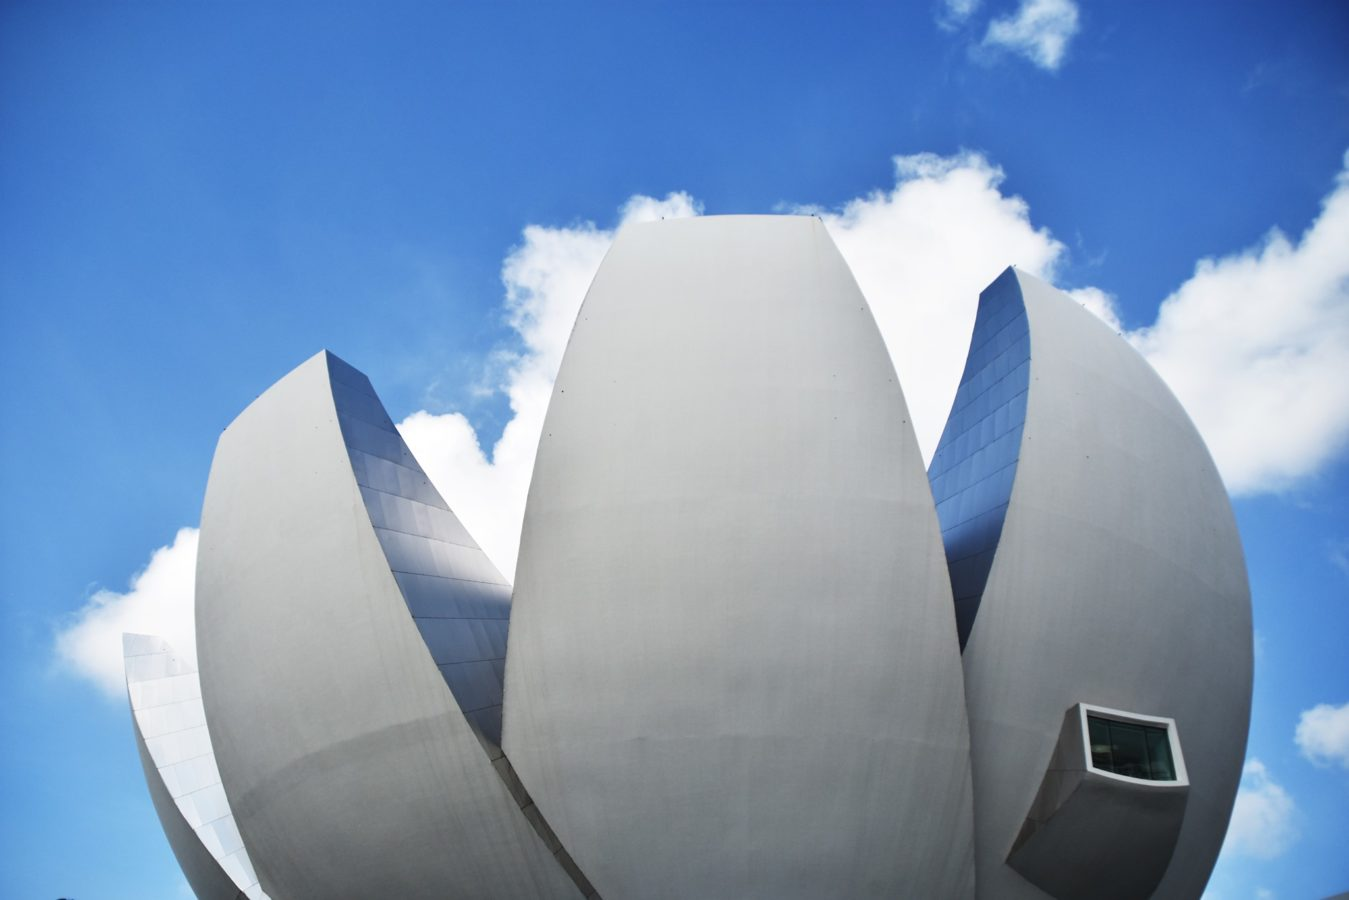 Take a virtual tour of the ArtScience Museum in Singapore